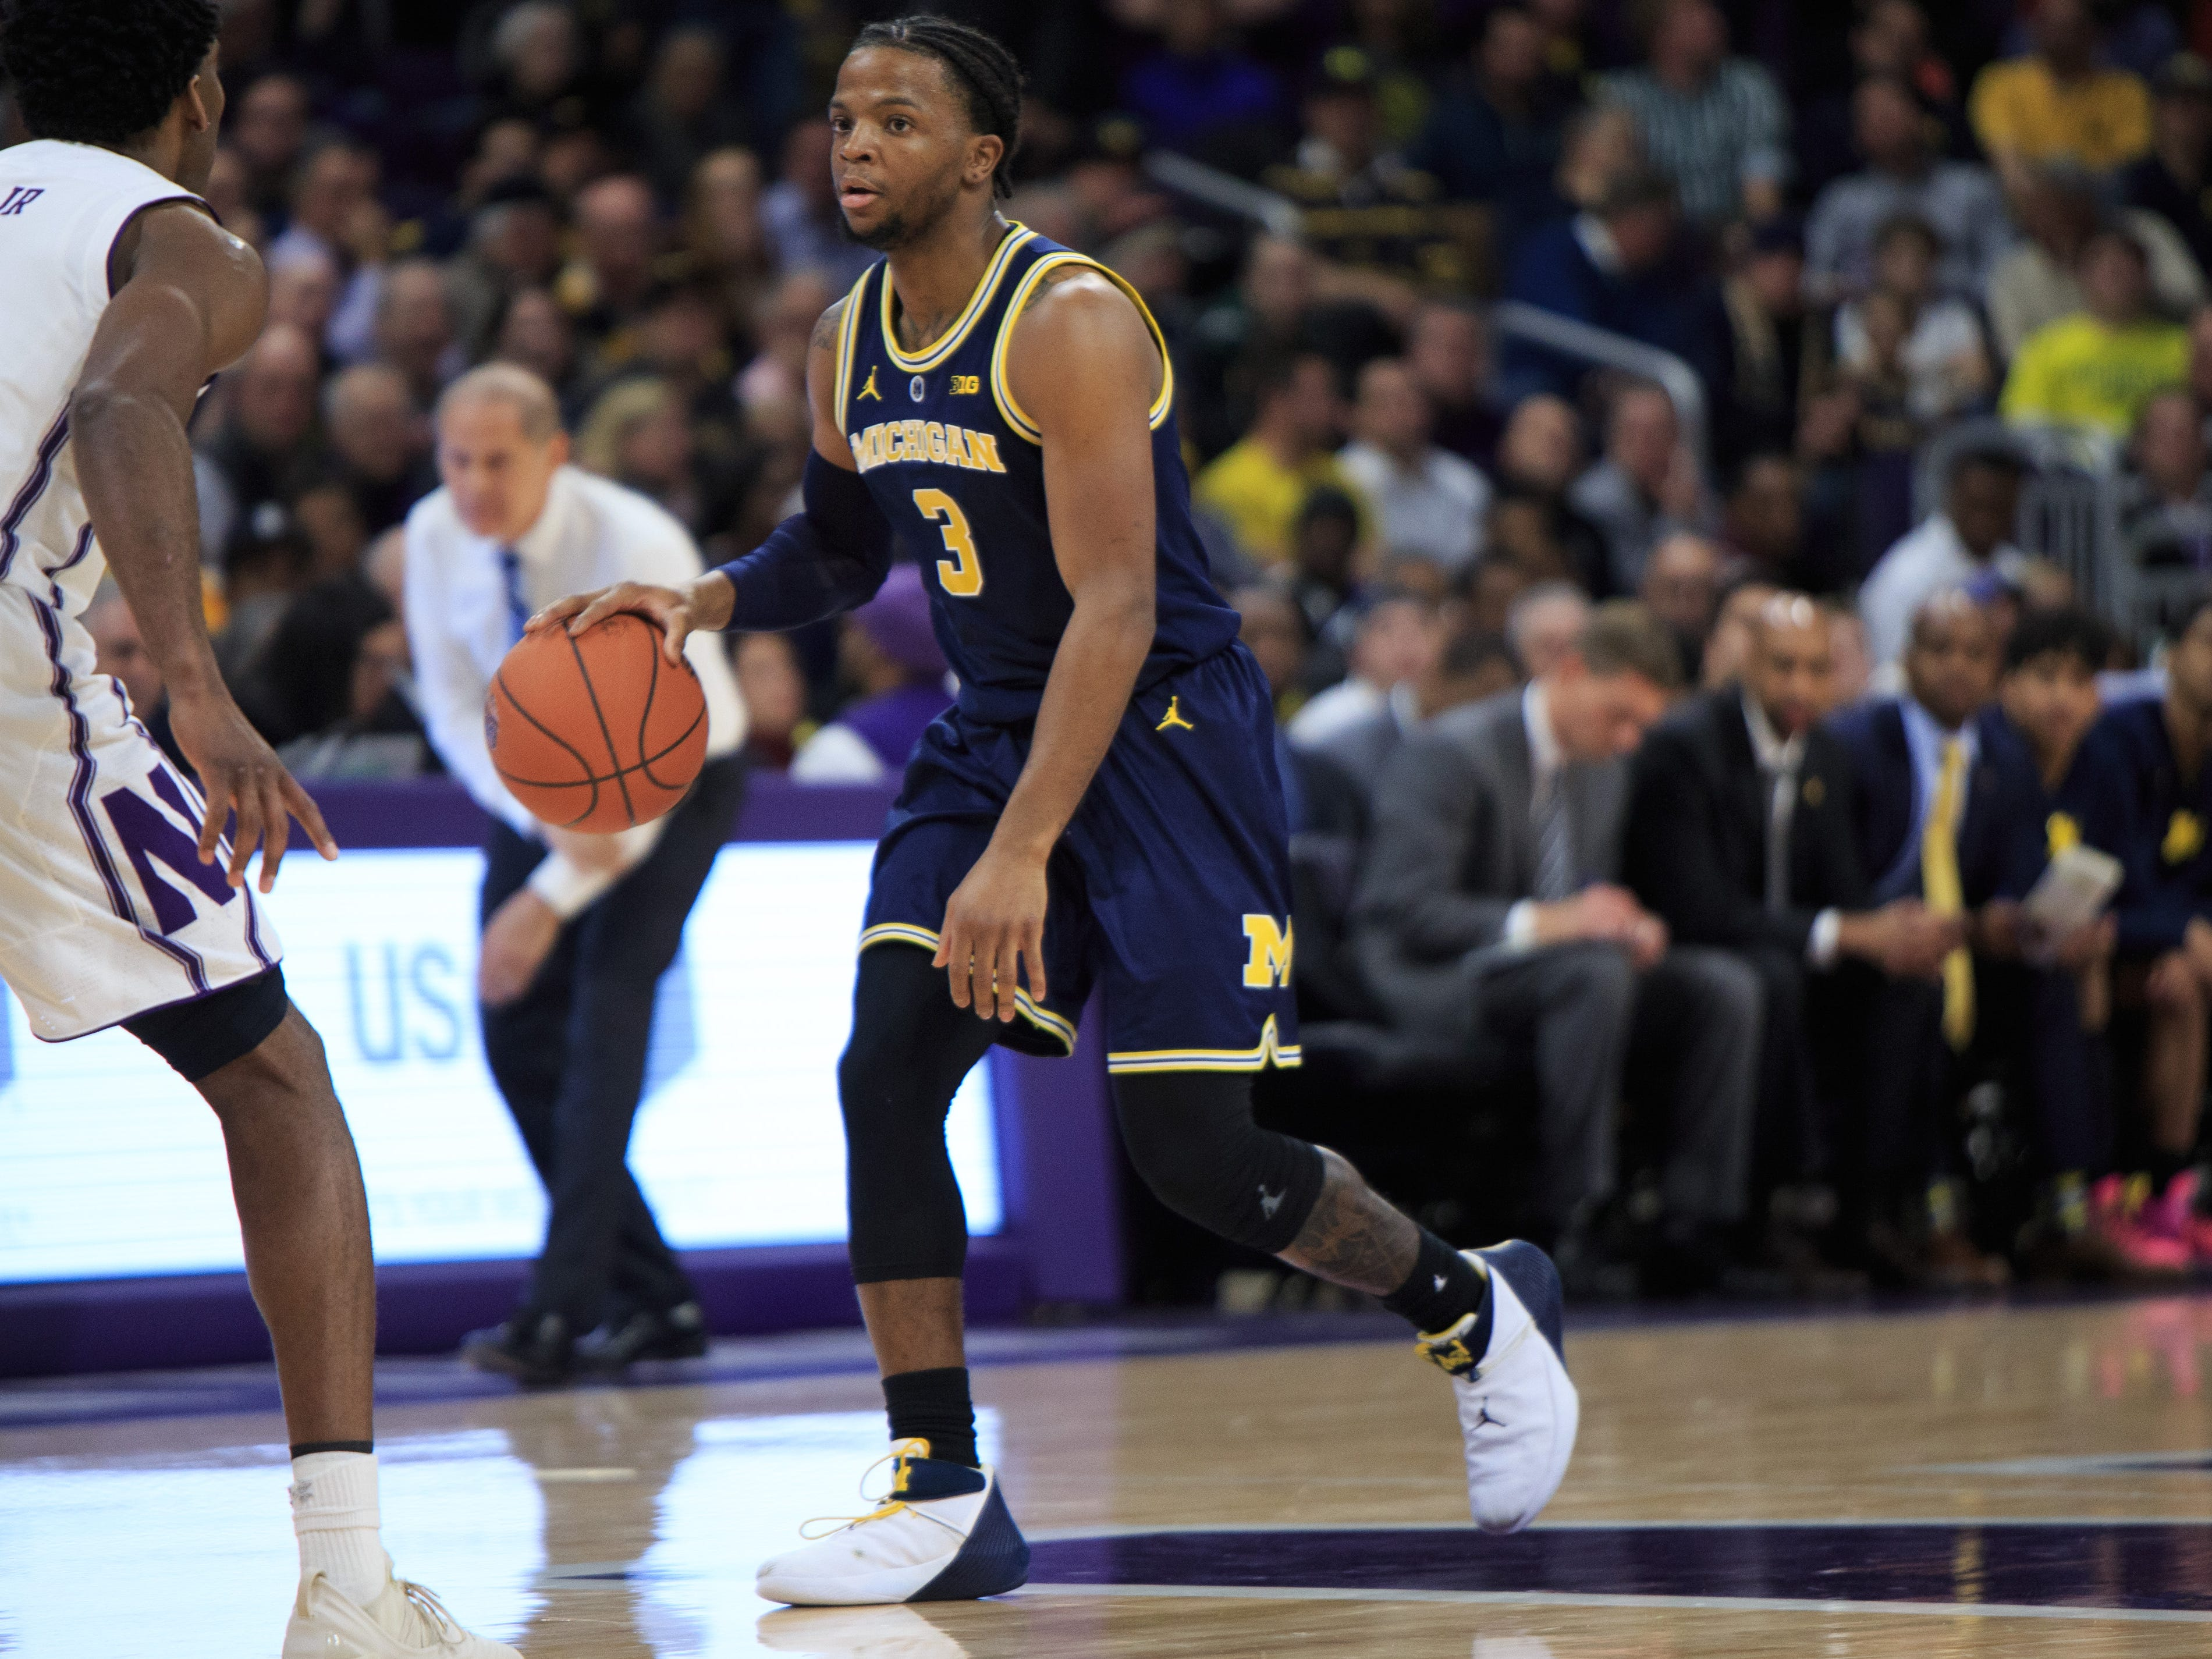 Michigan's Zavier Simpson brings the ball up the court in the game against Northwestern in the first half at Welsh-Ryan Arena on Dec. 4, 2018 in Evanston, Ill.